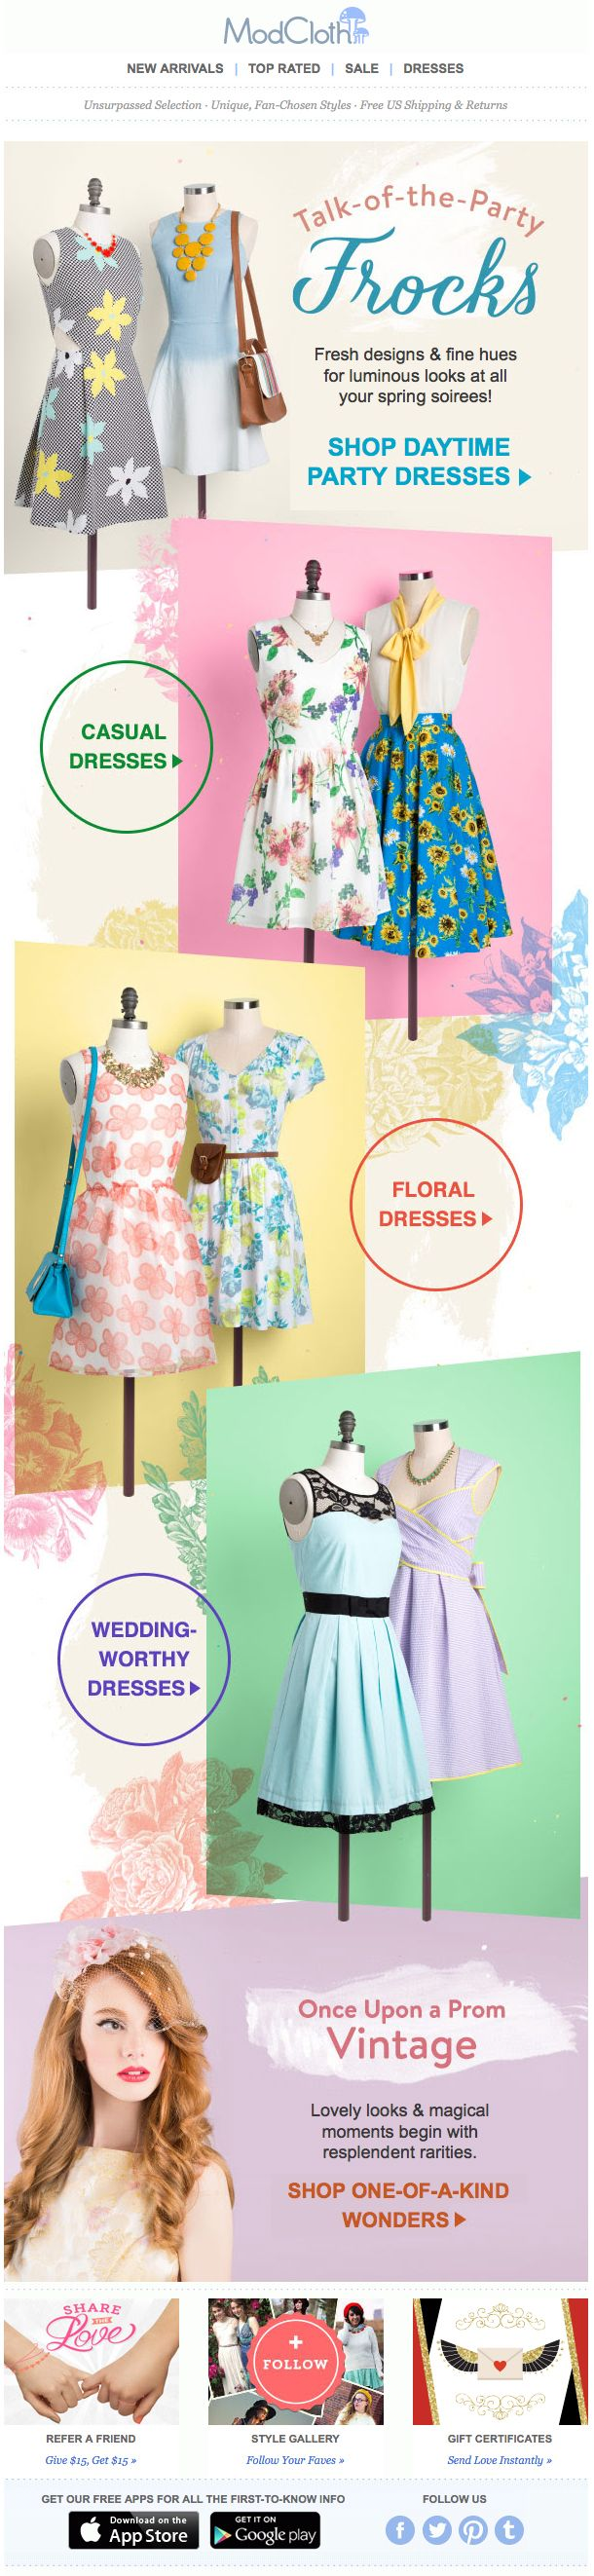 ModCloth : Use Of Pattern/Texture